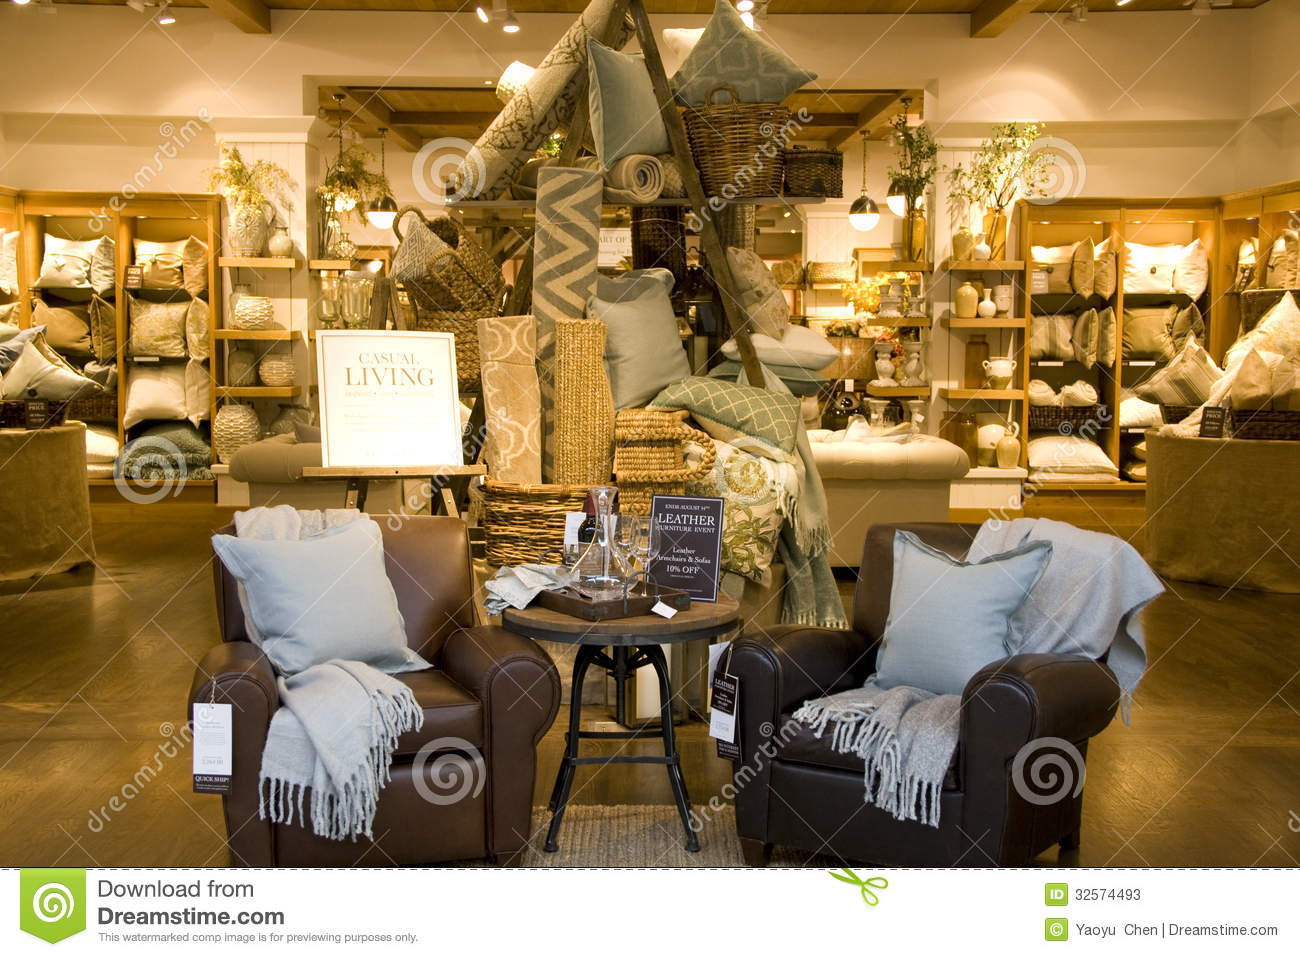 Furniture home decor store editorial stock photo image of for Home decor furniture stores